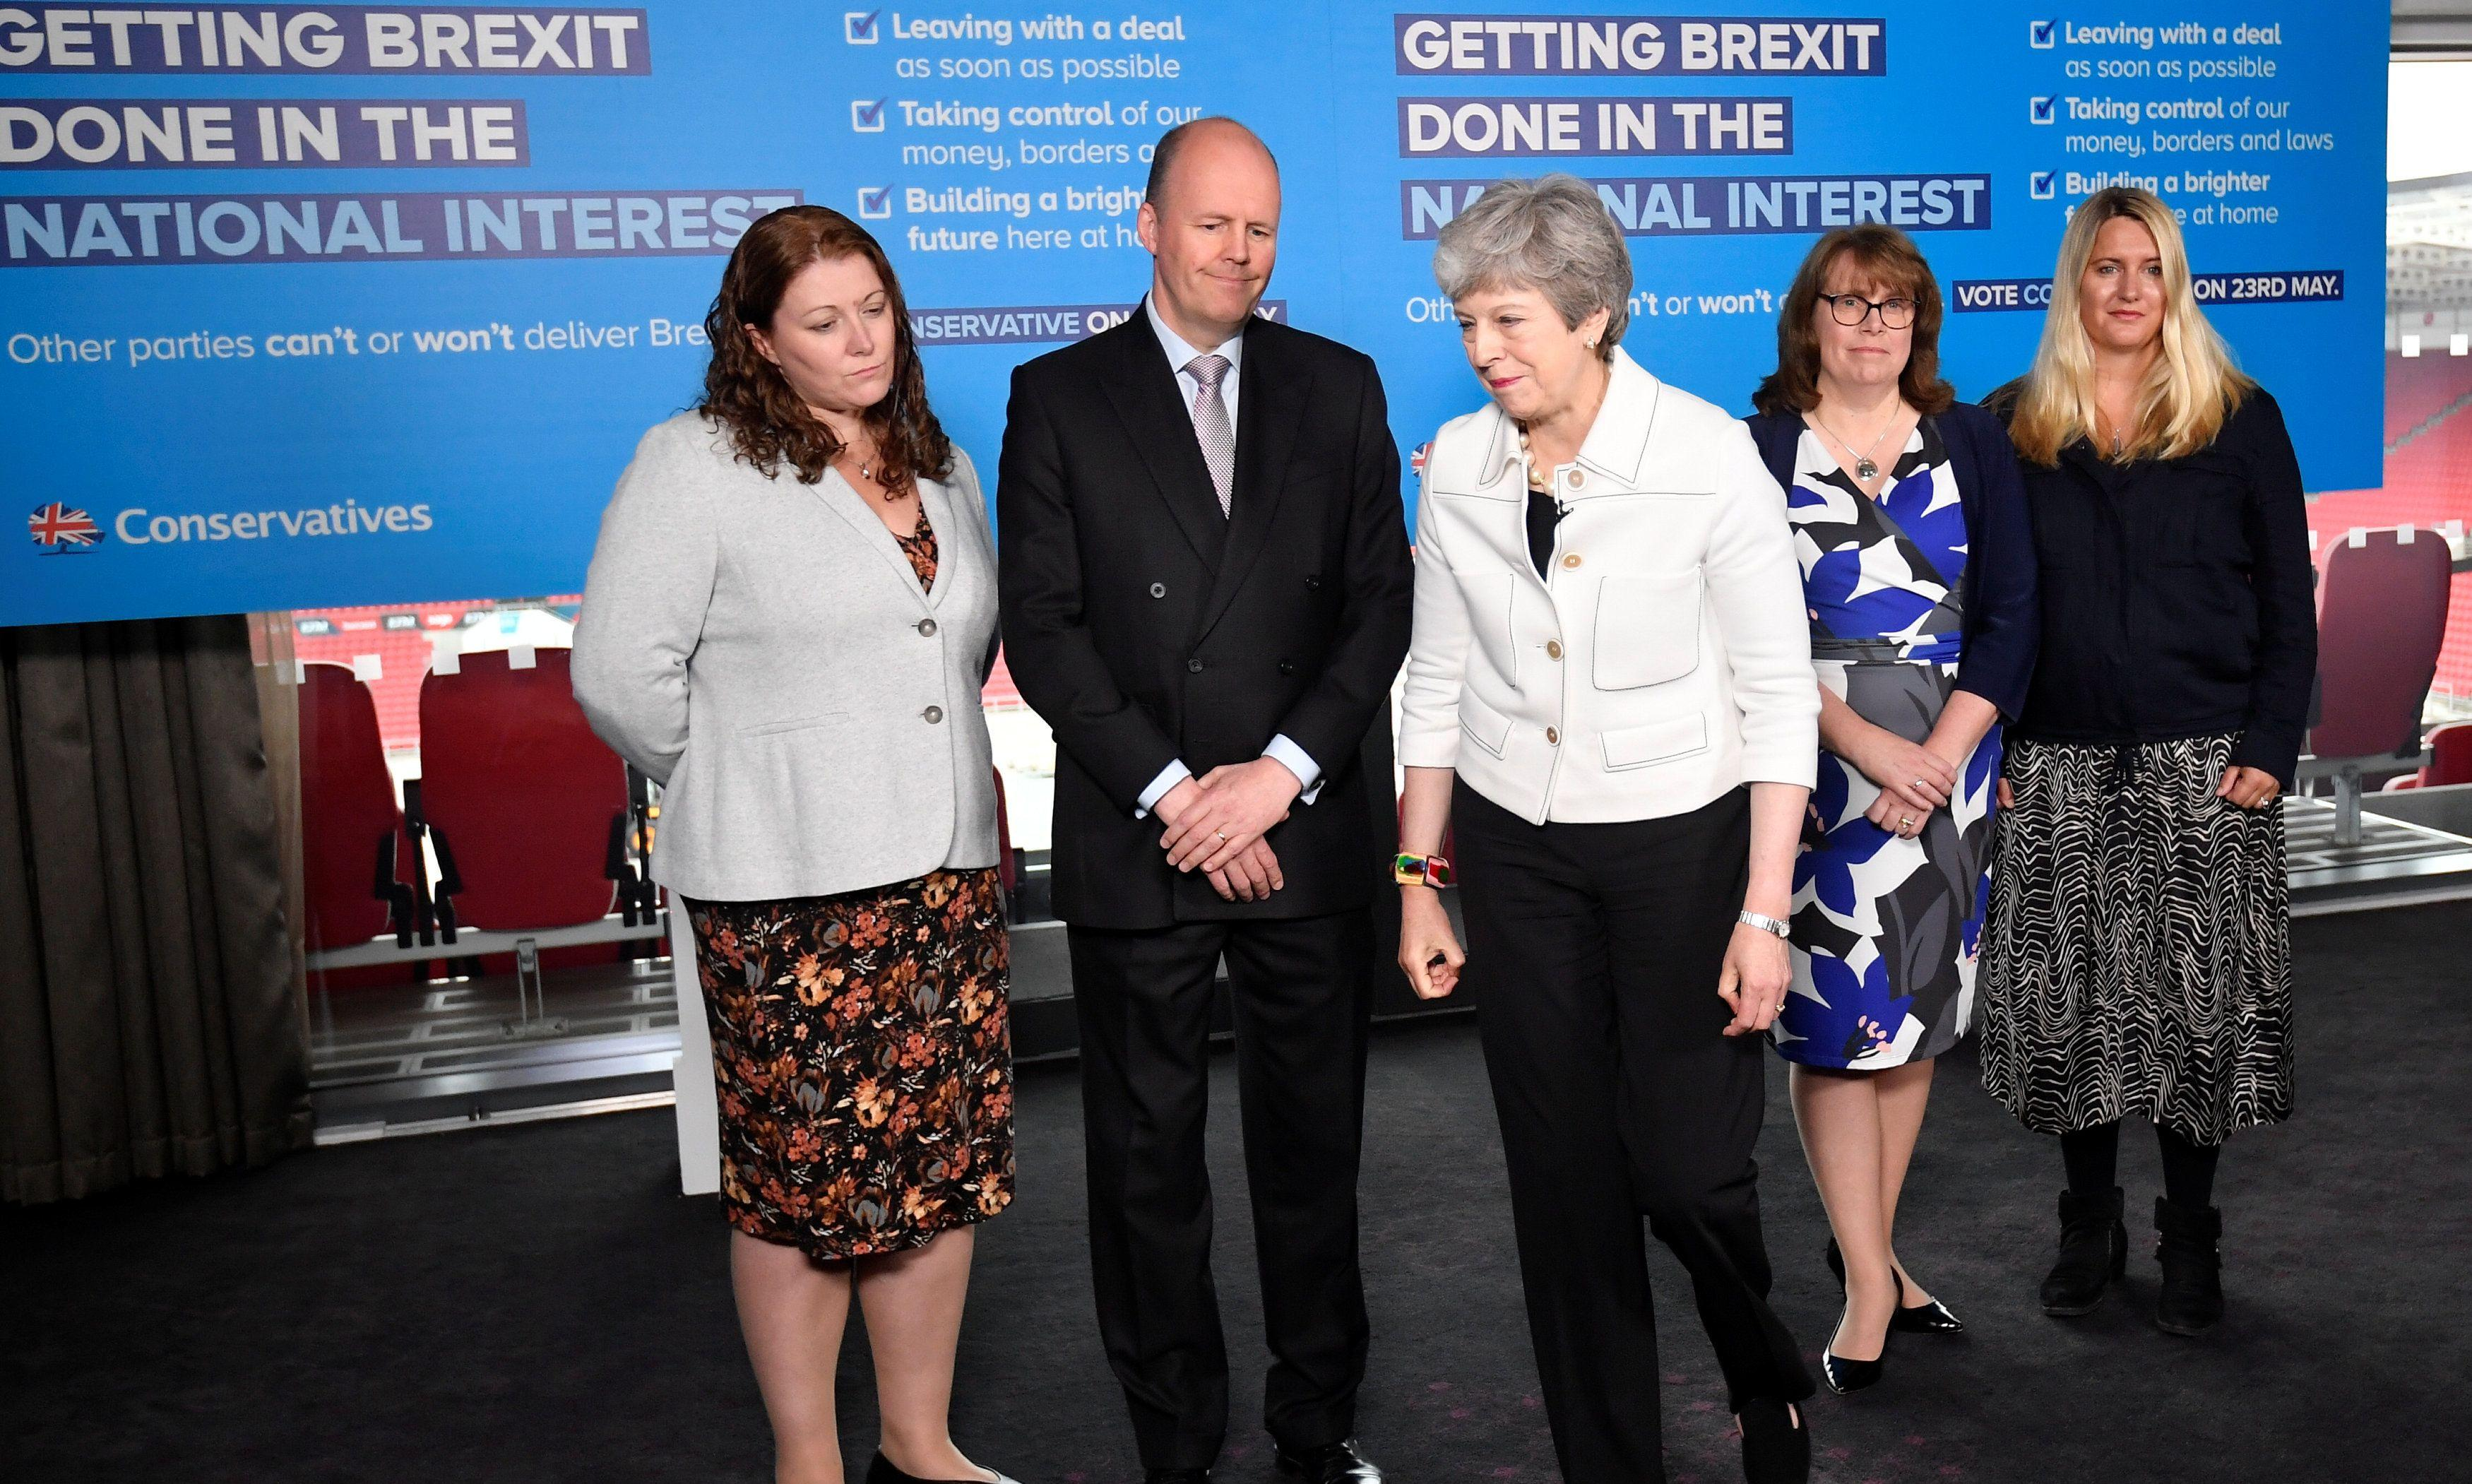 'Everyone knows it will be a disaster' – May's invisible campaign